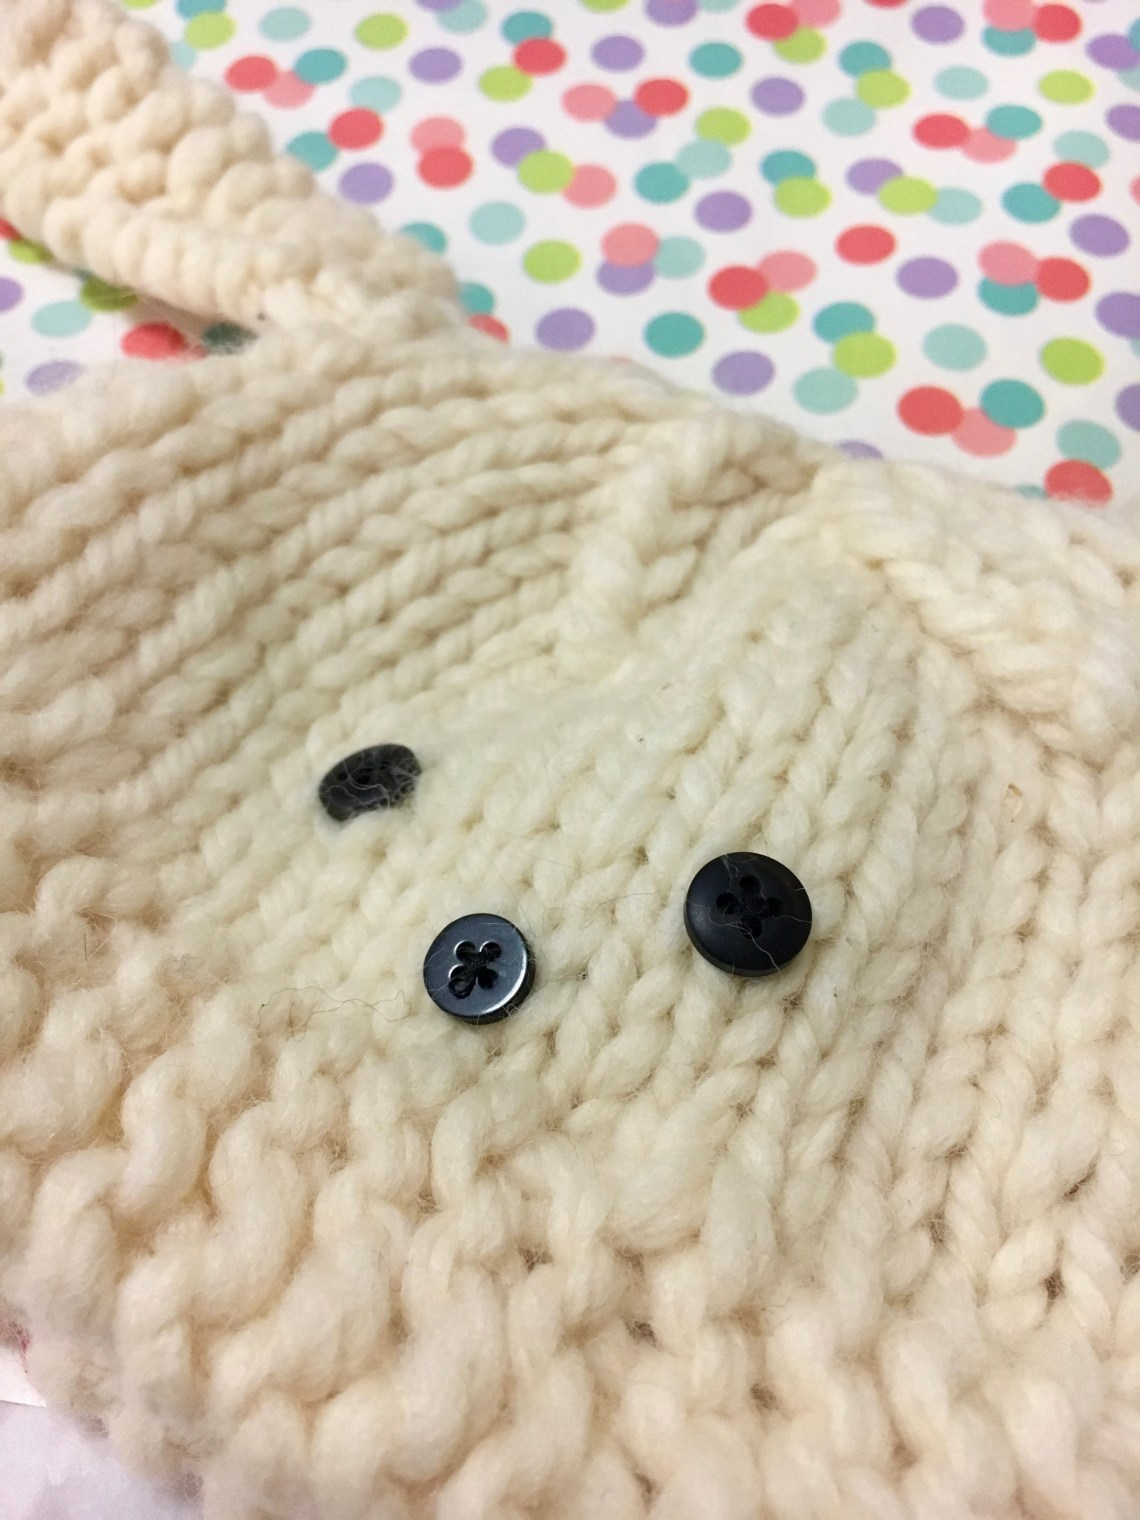 This Super quick baby hat has button eyes